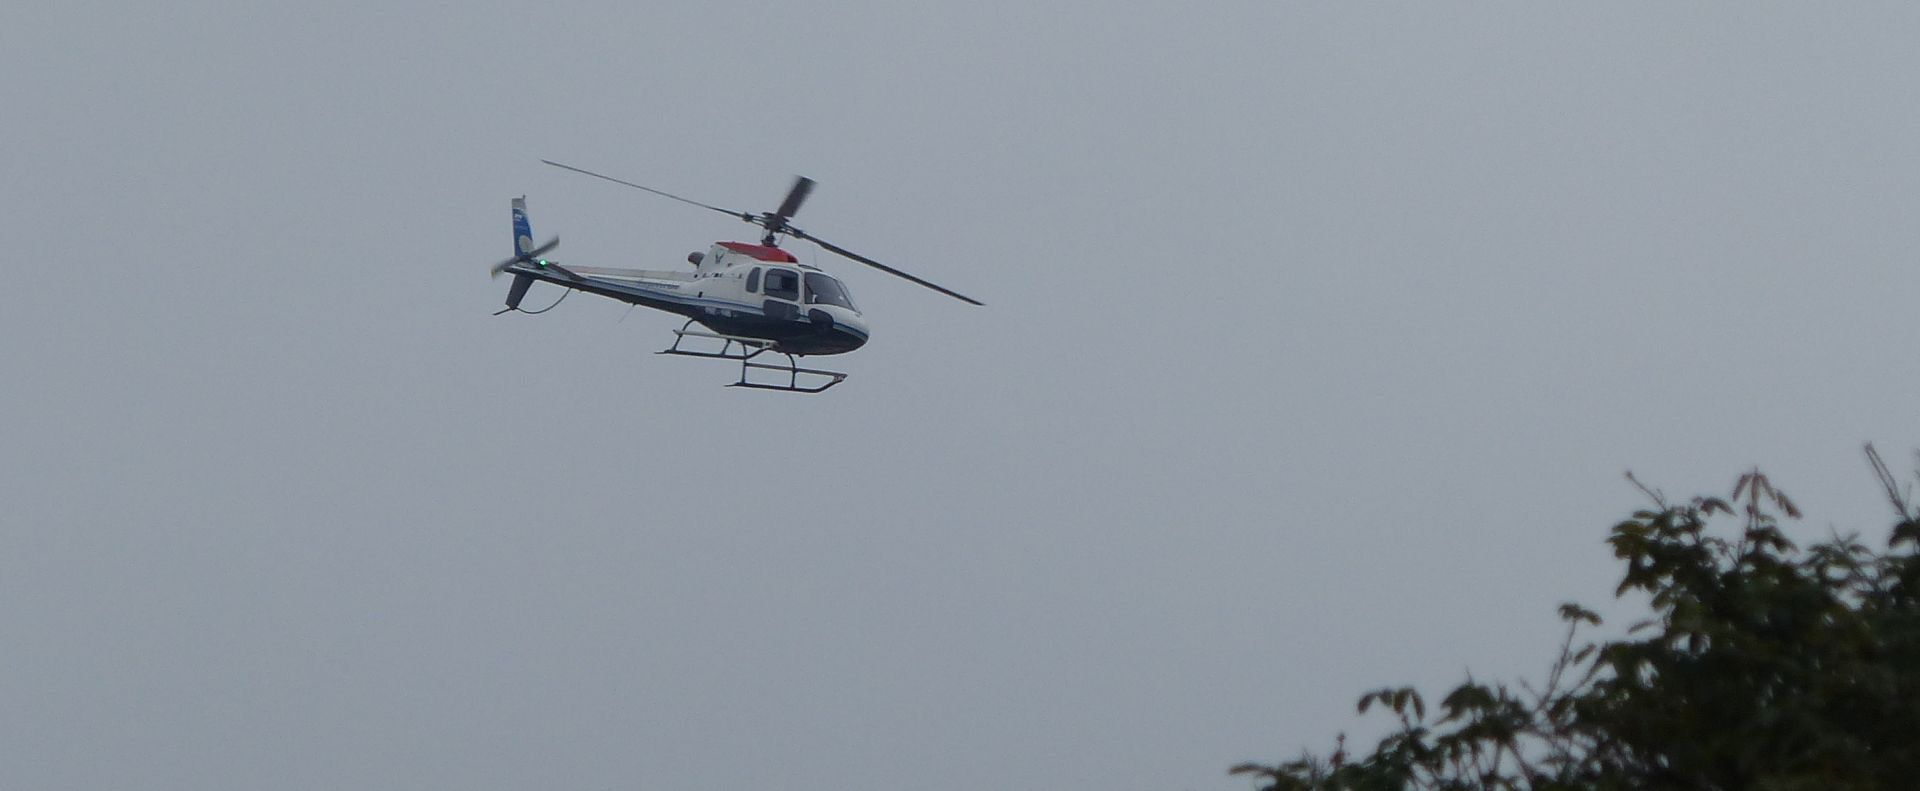 P2820971 police helicopter